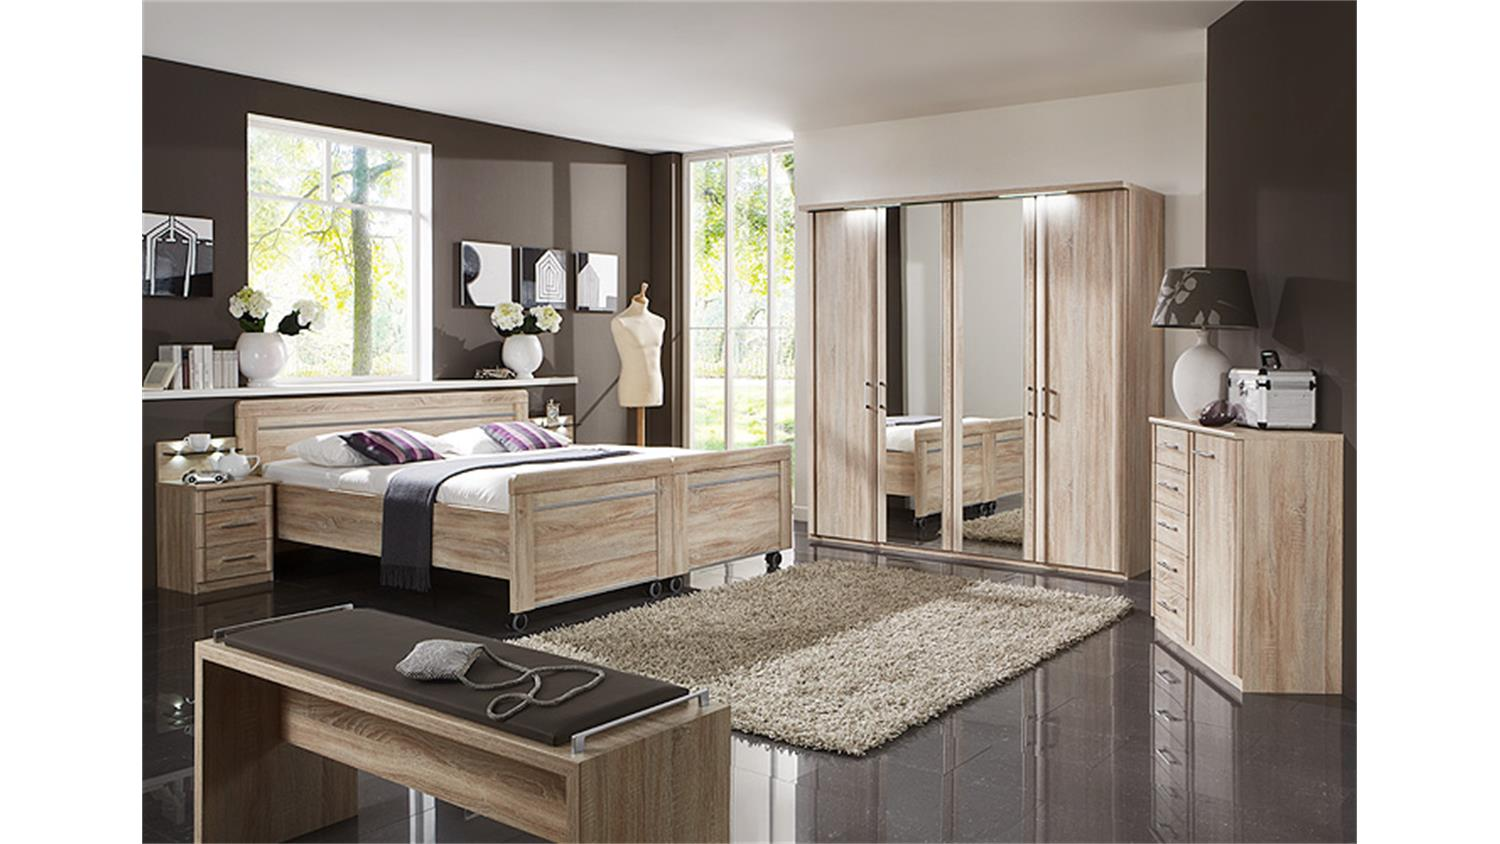 schlafzimmerset 5 meran schrank bett nako eiche s gerau. Black Bedroom Furniture Sets. Home Design Ideas